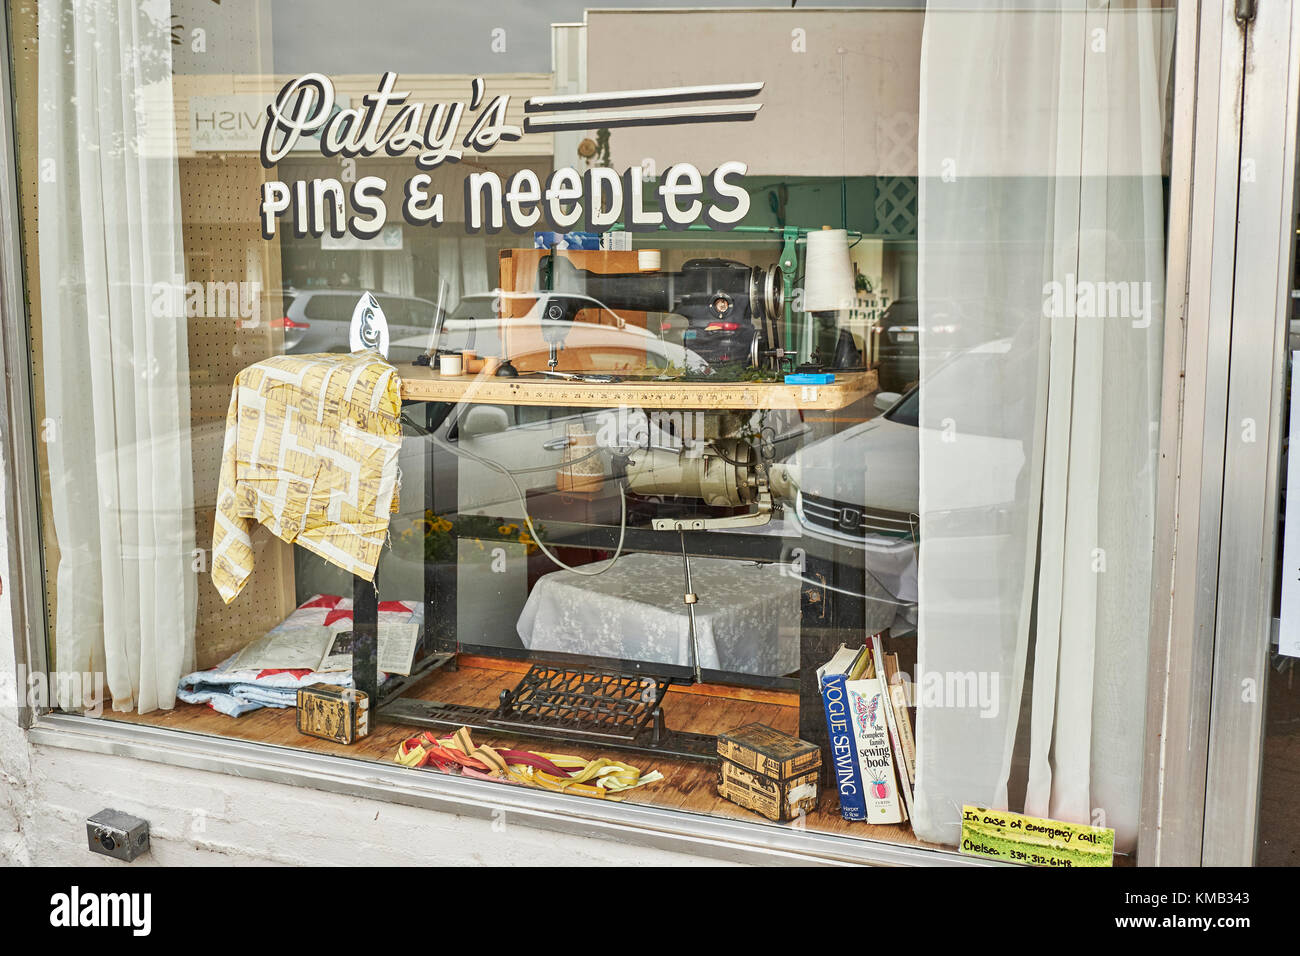 Vintage style sewing shop window in small rural town in the southern USA, Prattville Alabama United States. - Stock Image